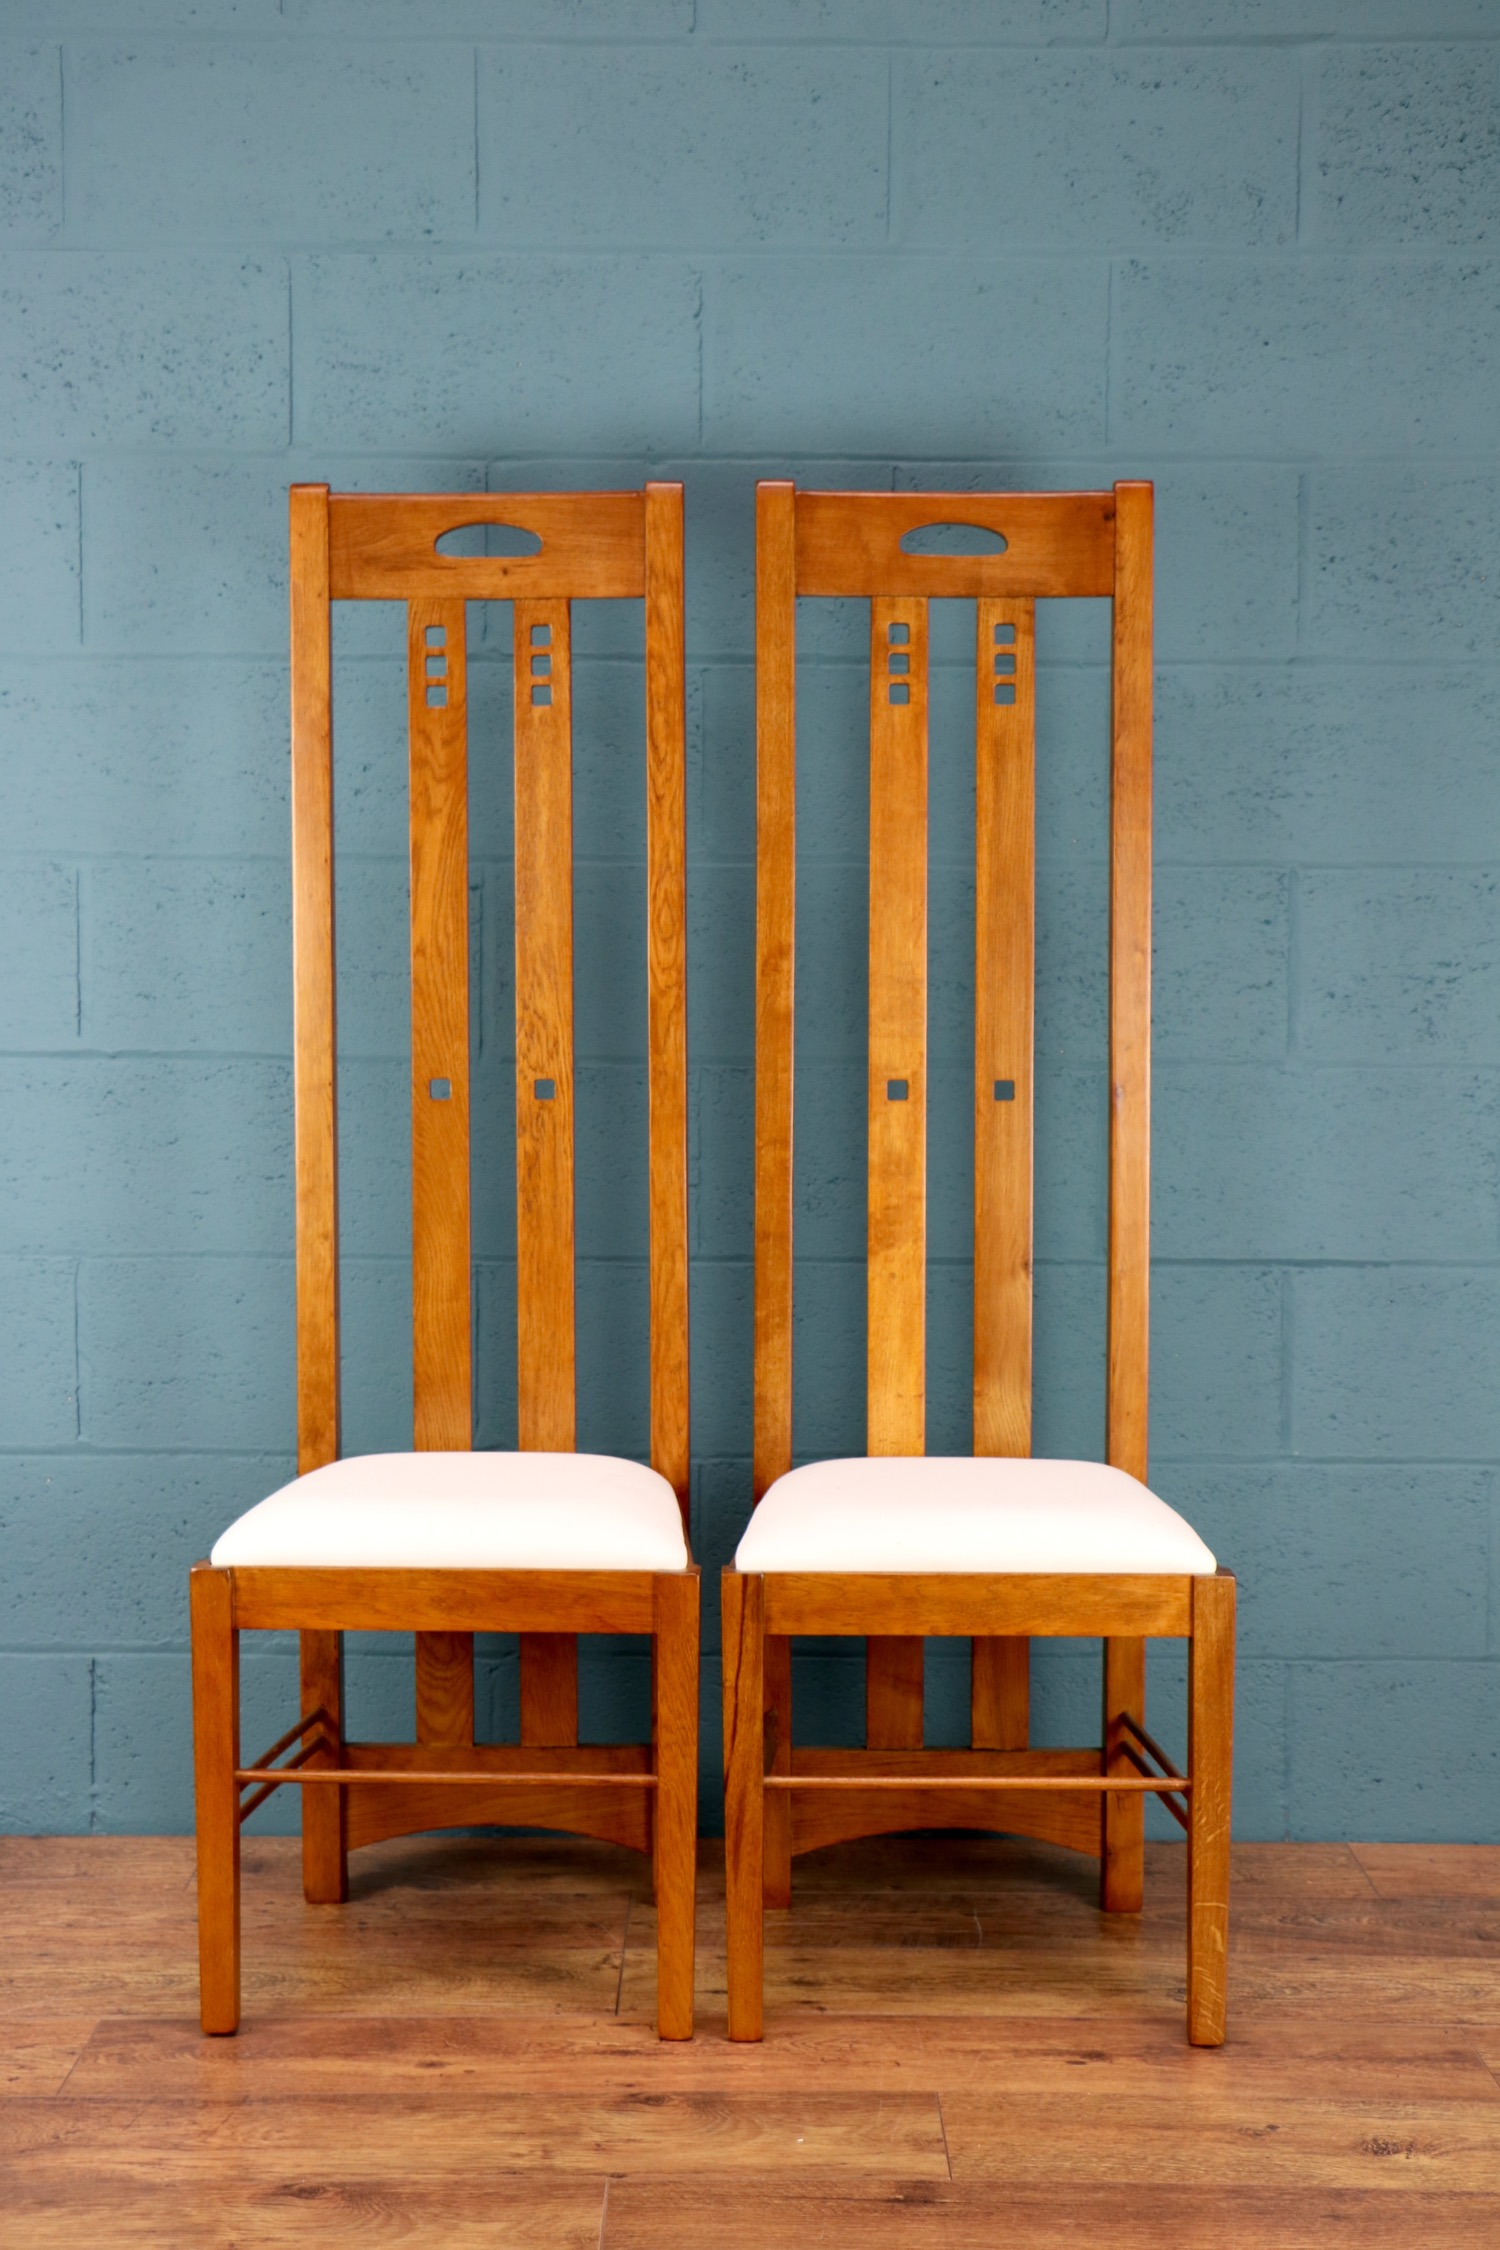 - I'm thrilled with the chairs - so glad we tried them out in my hall.Susan, Hertfordshire